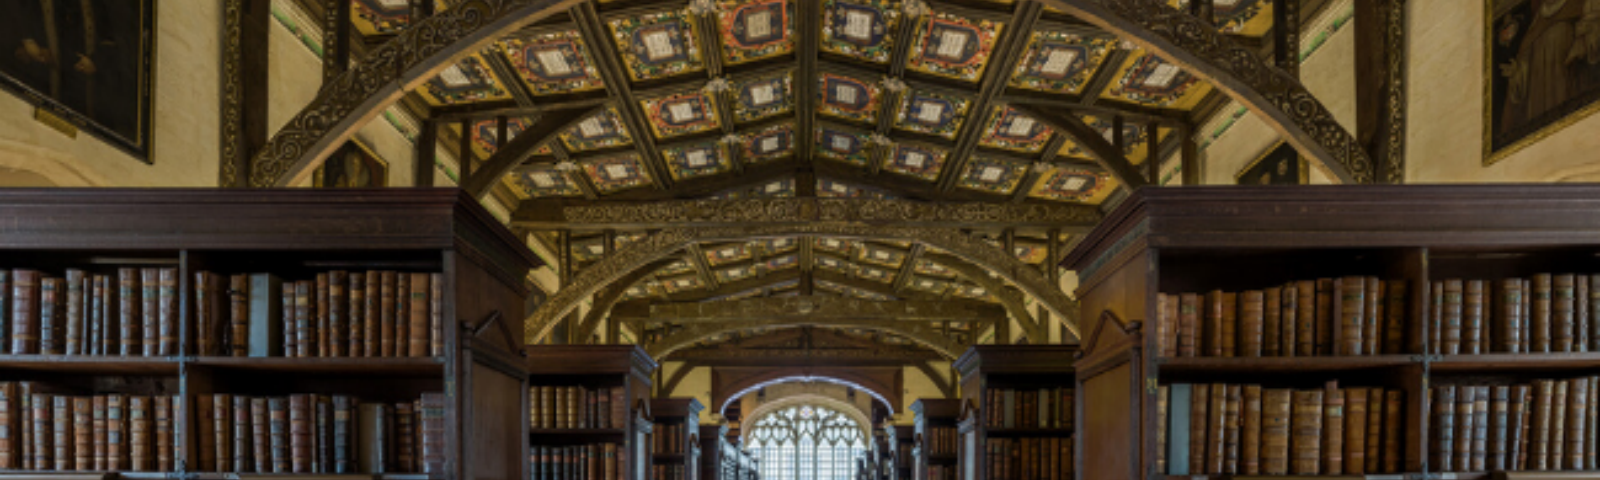 inside of a library